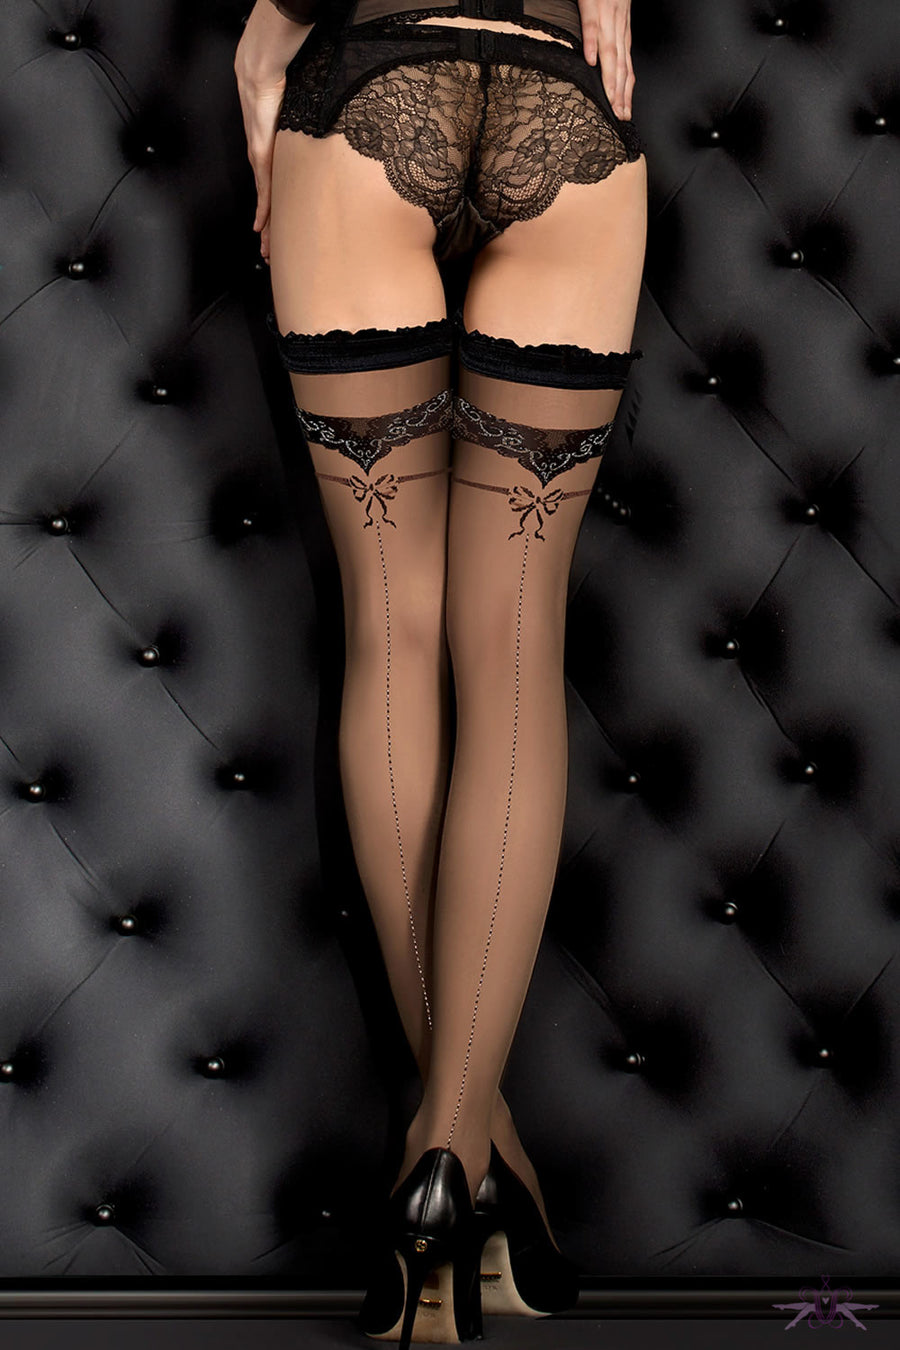 Ballerina Black Seamed Bow Hold Ups - Mayfair Stockings